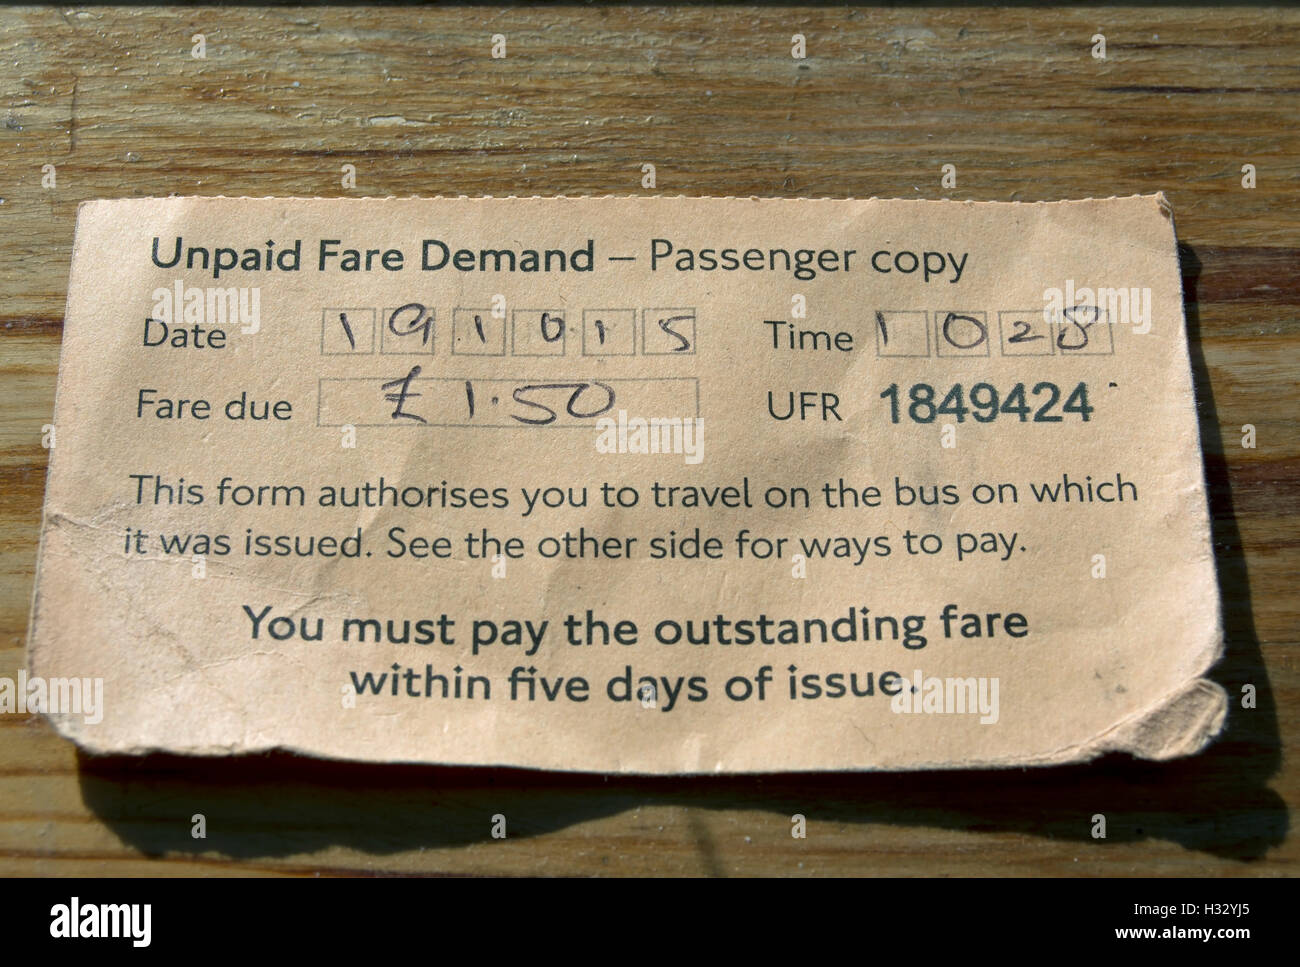 passenger copy of an unpaid fare demand issued by a london bus company - Stock Image